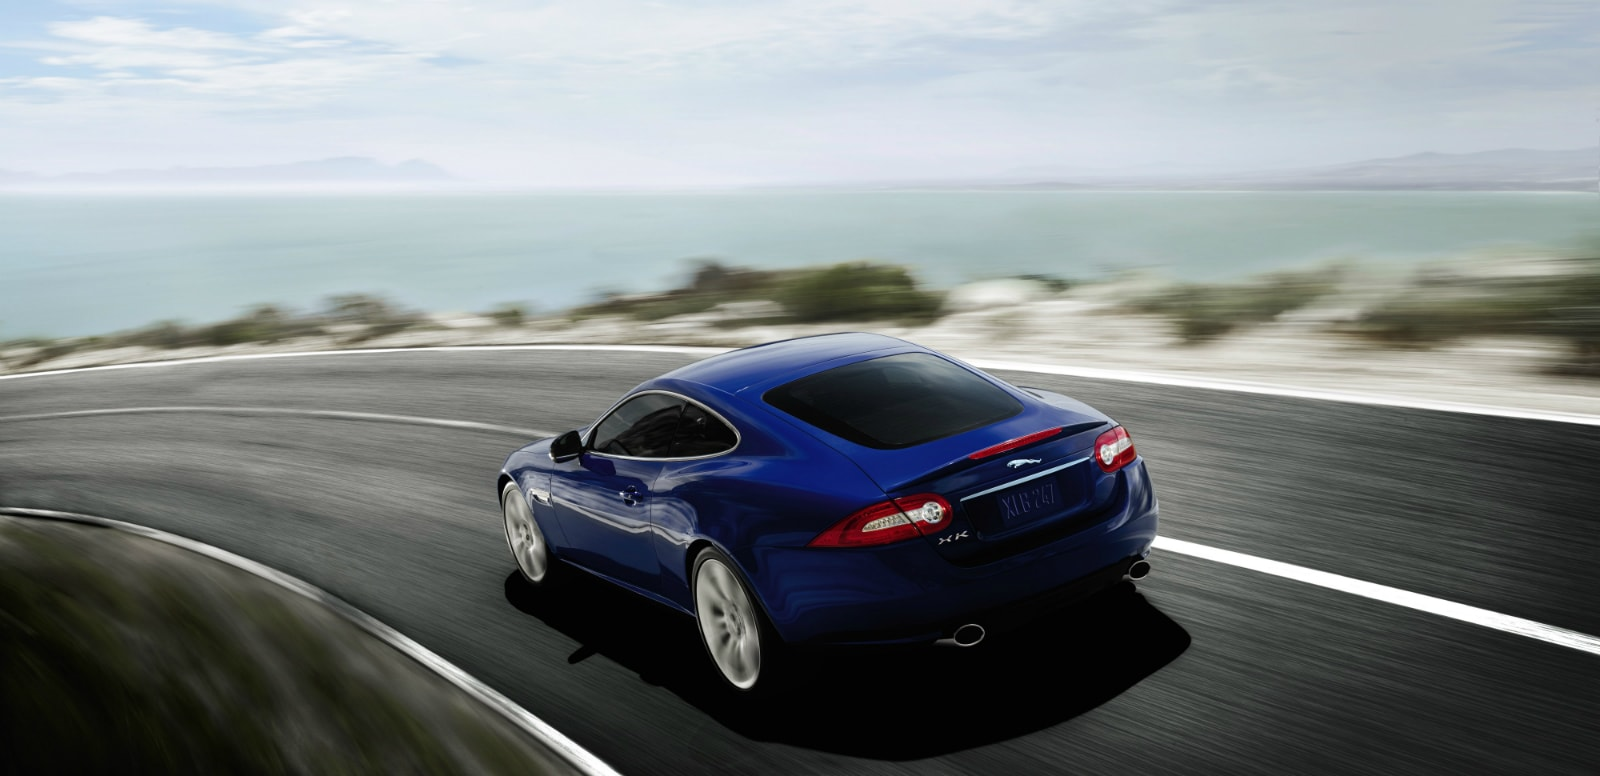 hight resolution of jaguar xkr xkr interior warm charcoal ivory xkr exterior kyanite blue